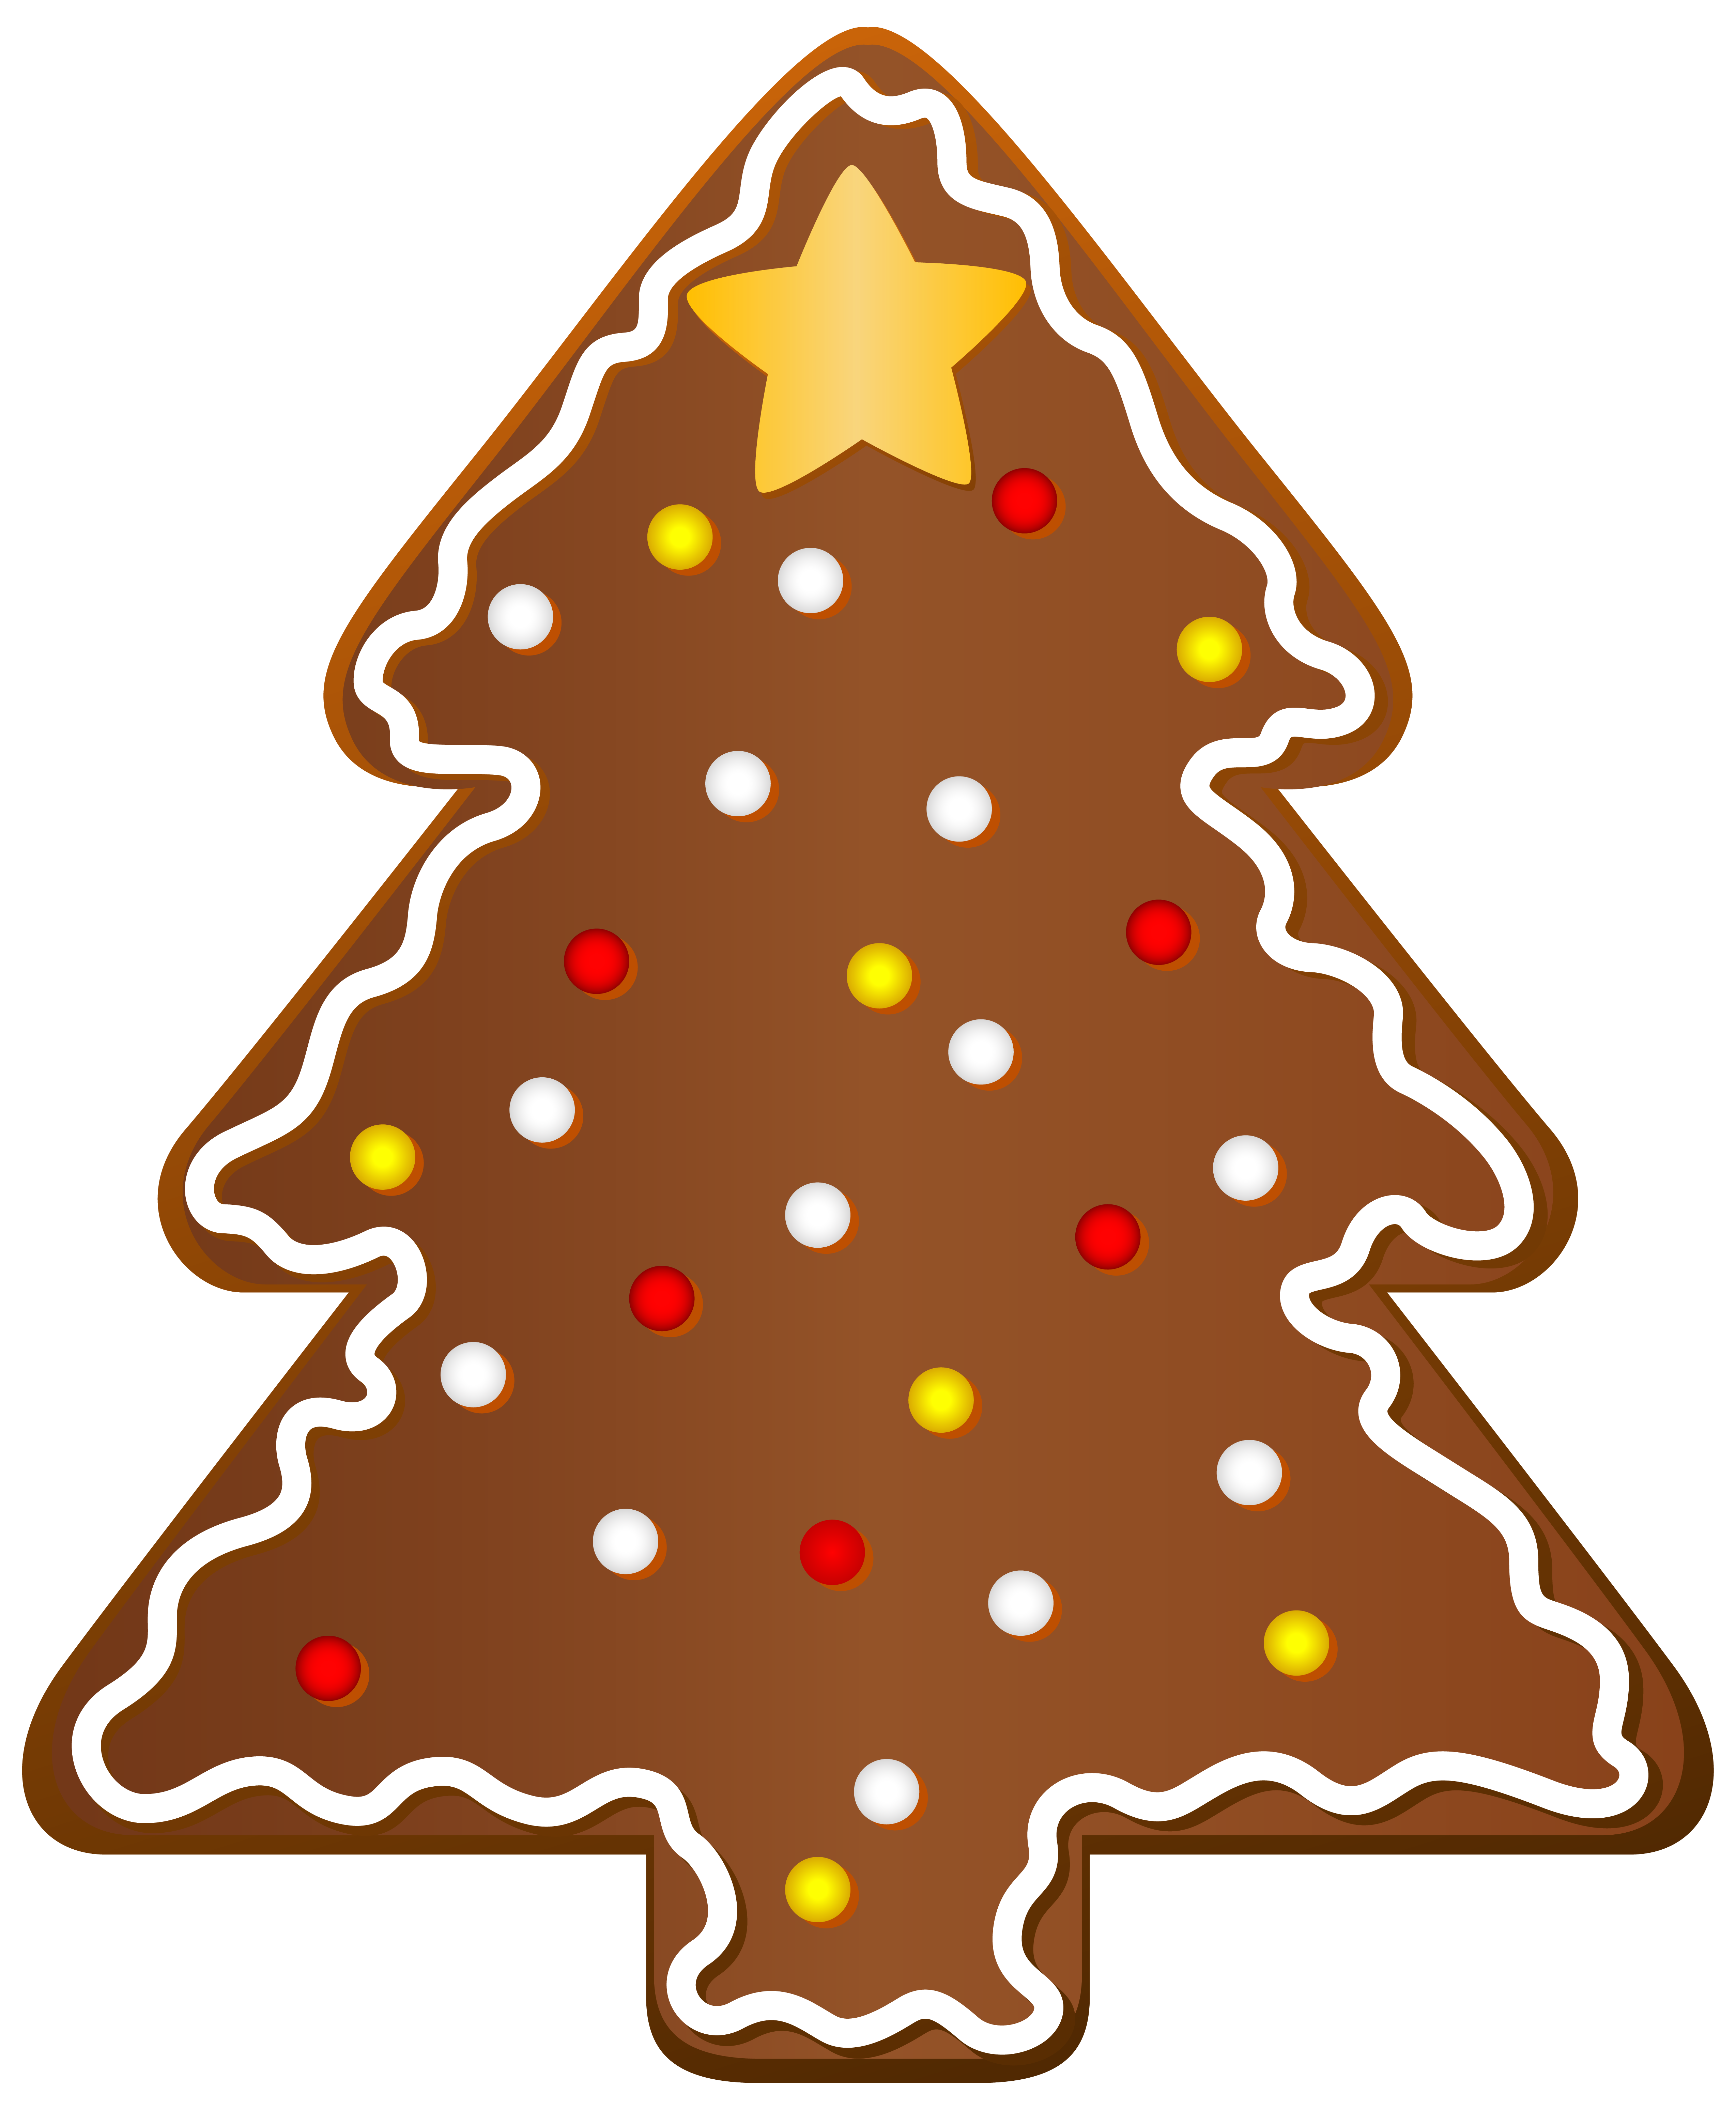 Cookie png image gallery. Gingerbread clipart christmas tree